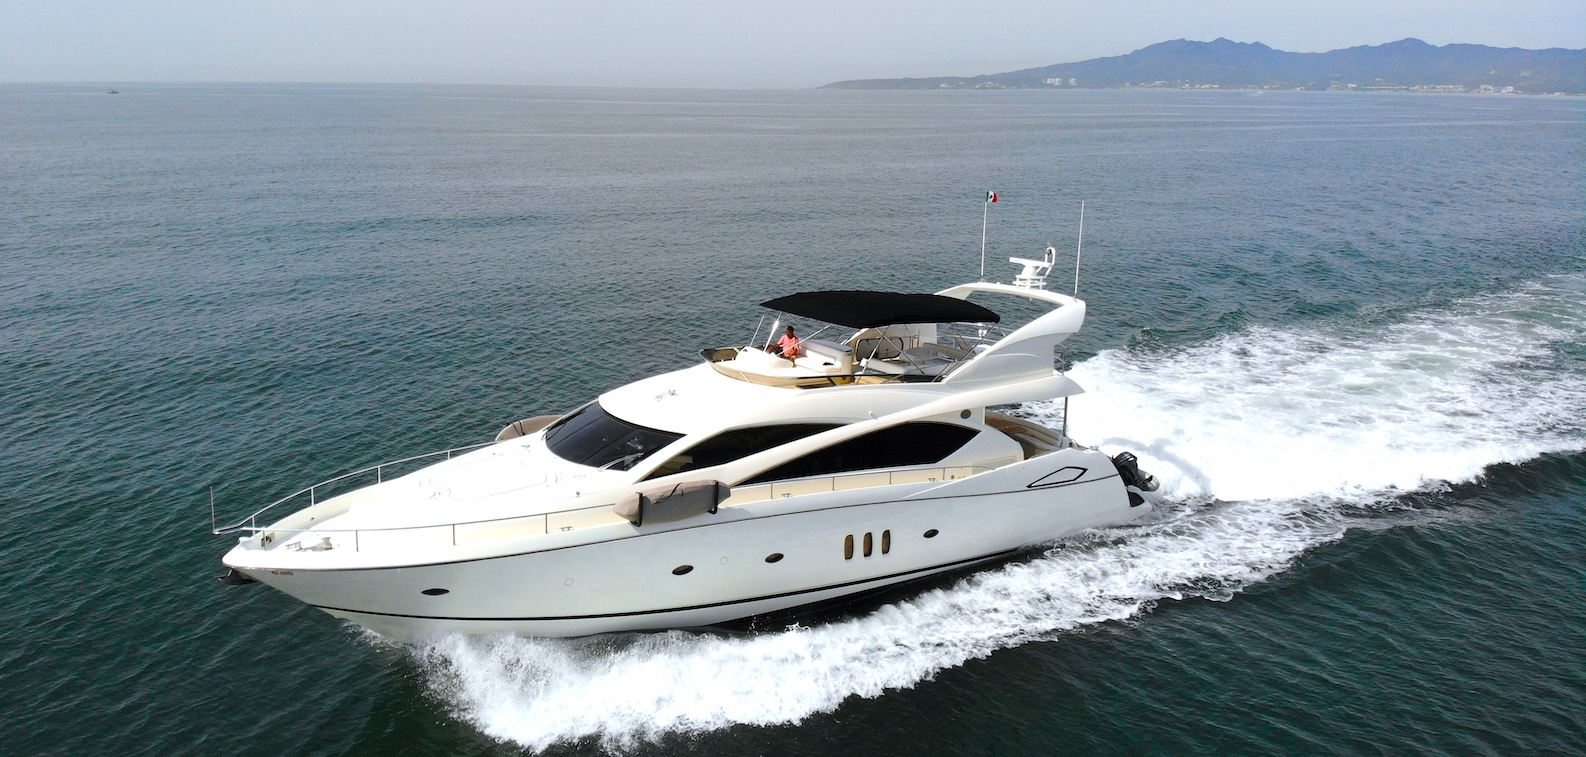 76 ft. Sunseeker - Power Yacht - Up to 16 People2